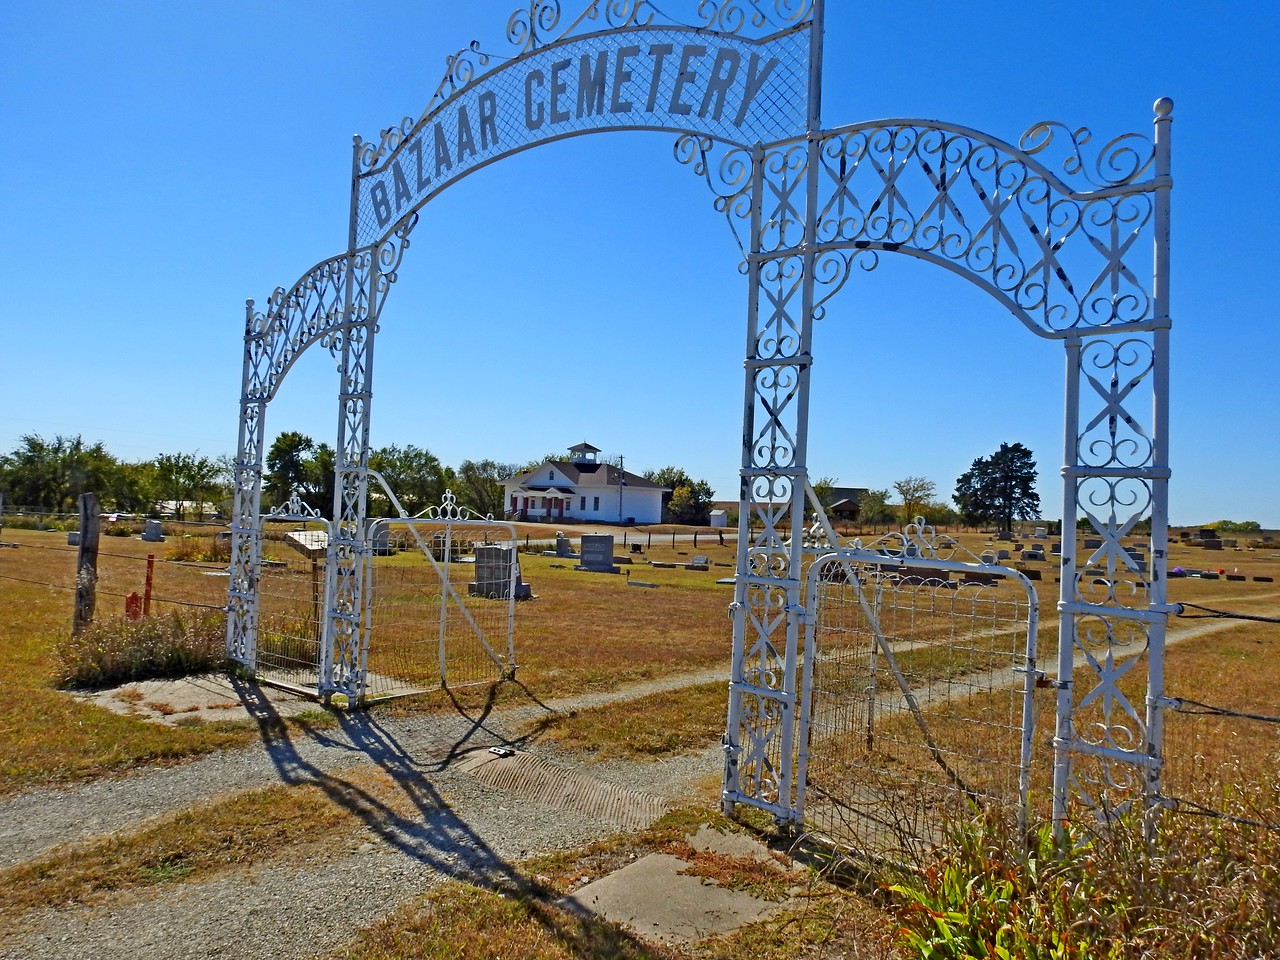 Bazaar Cemetery was well groomed and contains graves of some of the earliest settlers of the area.